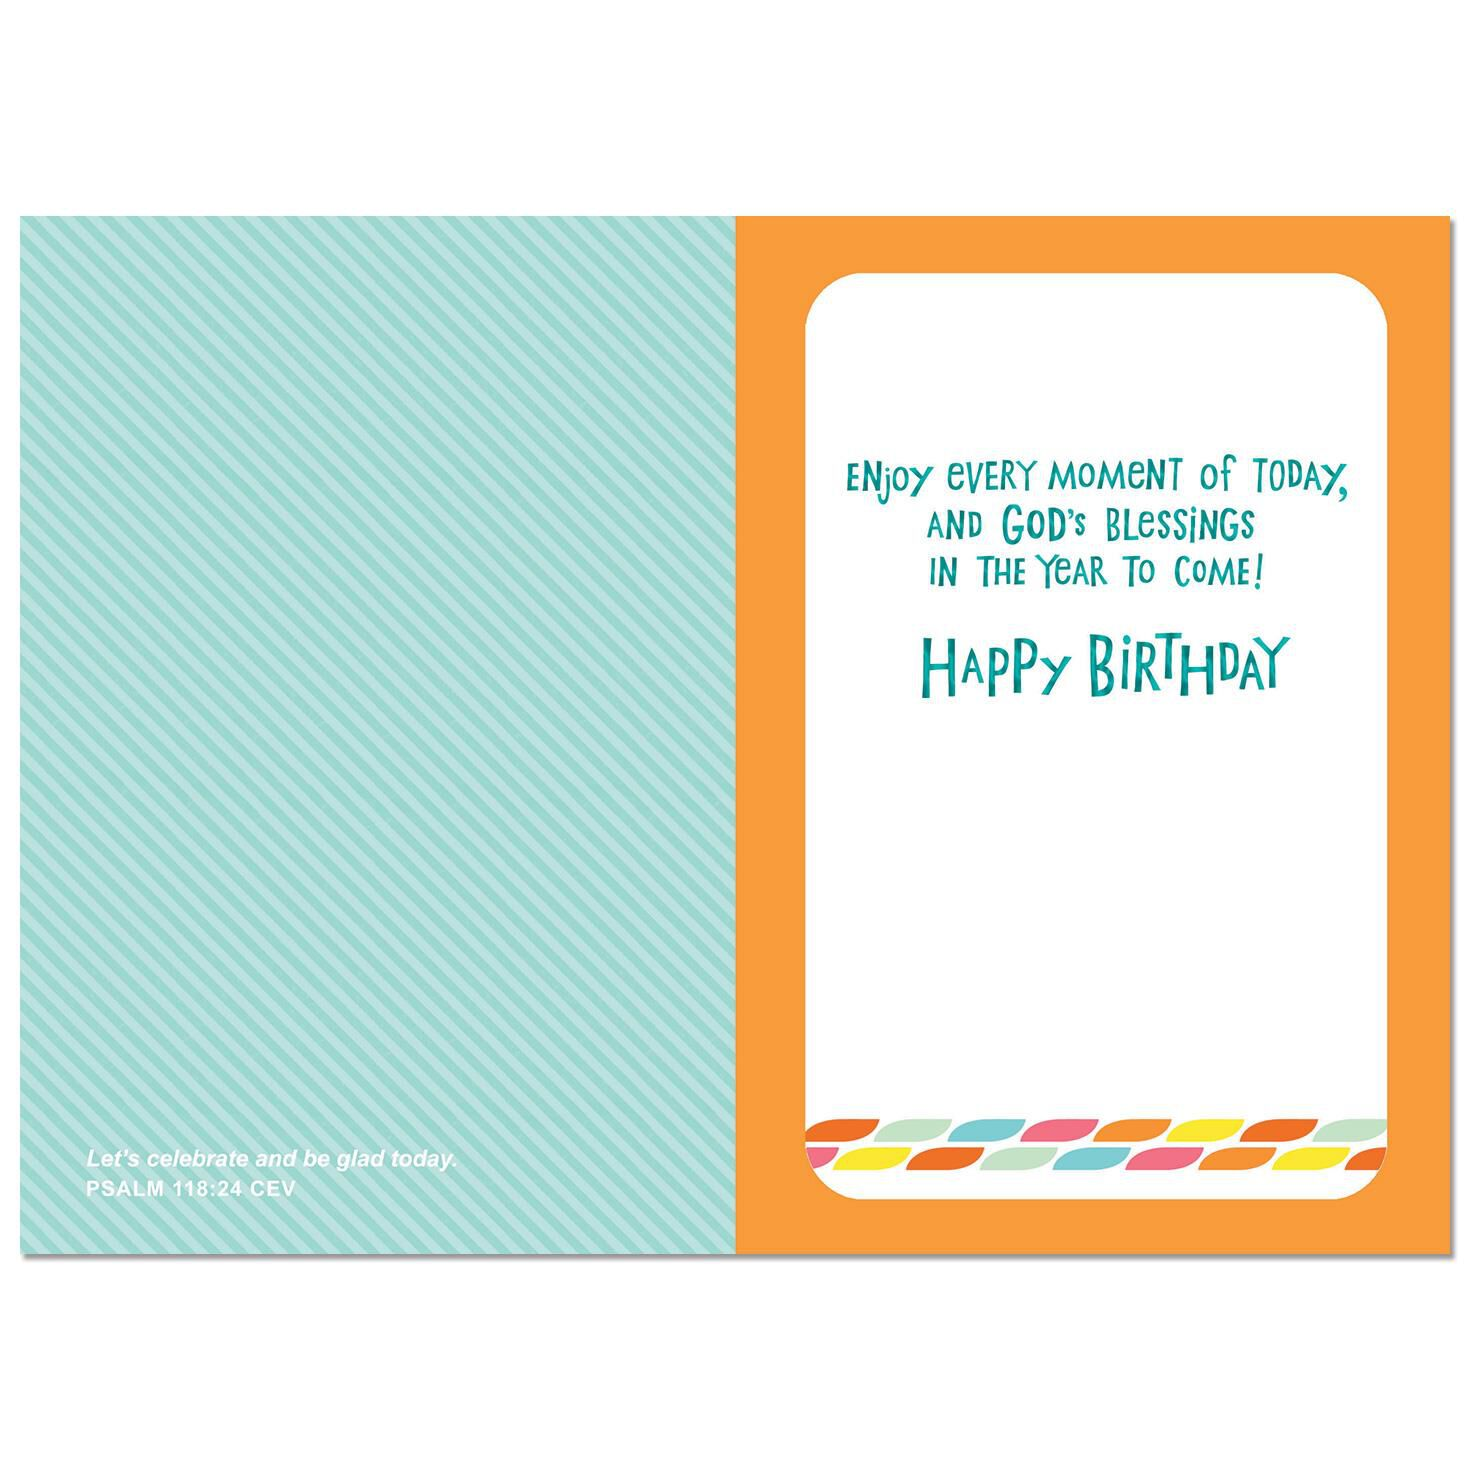 photograph relating to Free Printable Religious Birthday Cards identified as DaySpring Christian and Non secular Greeting Playing cards Hallmark